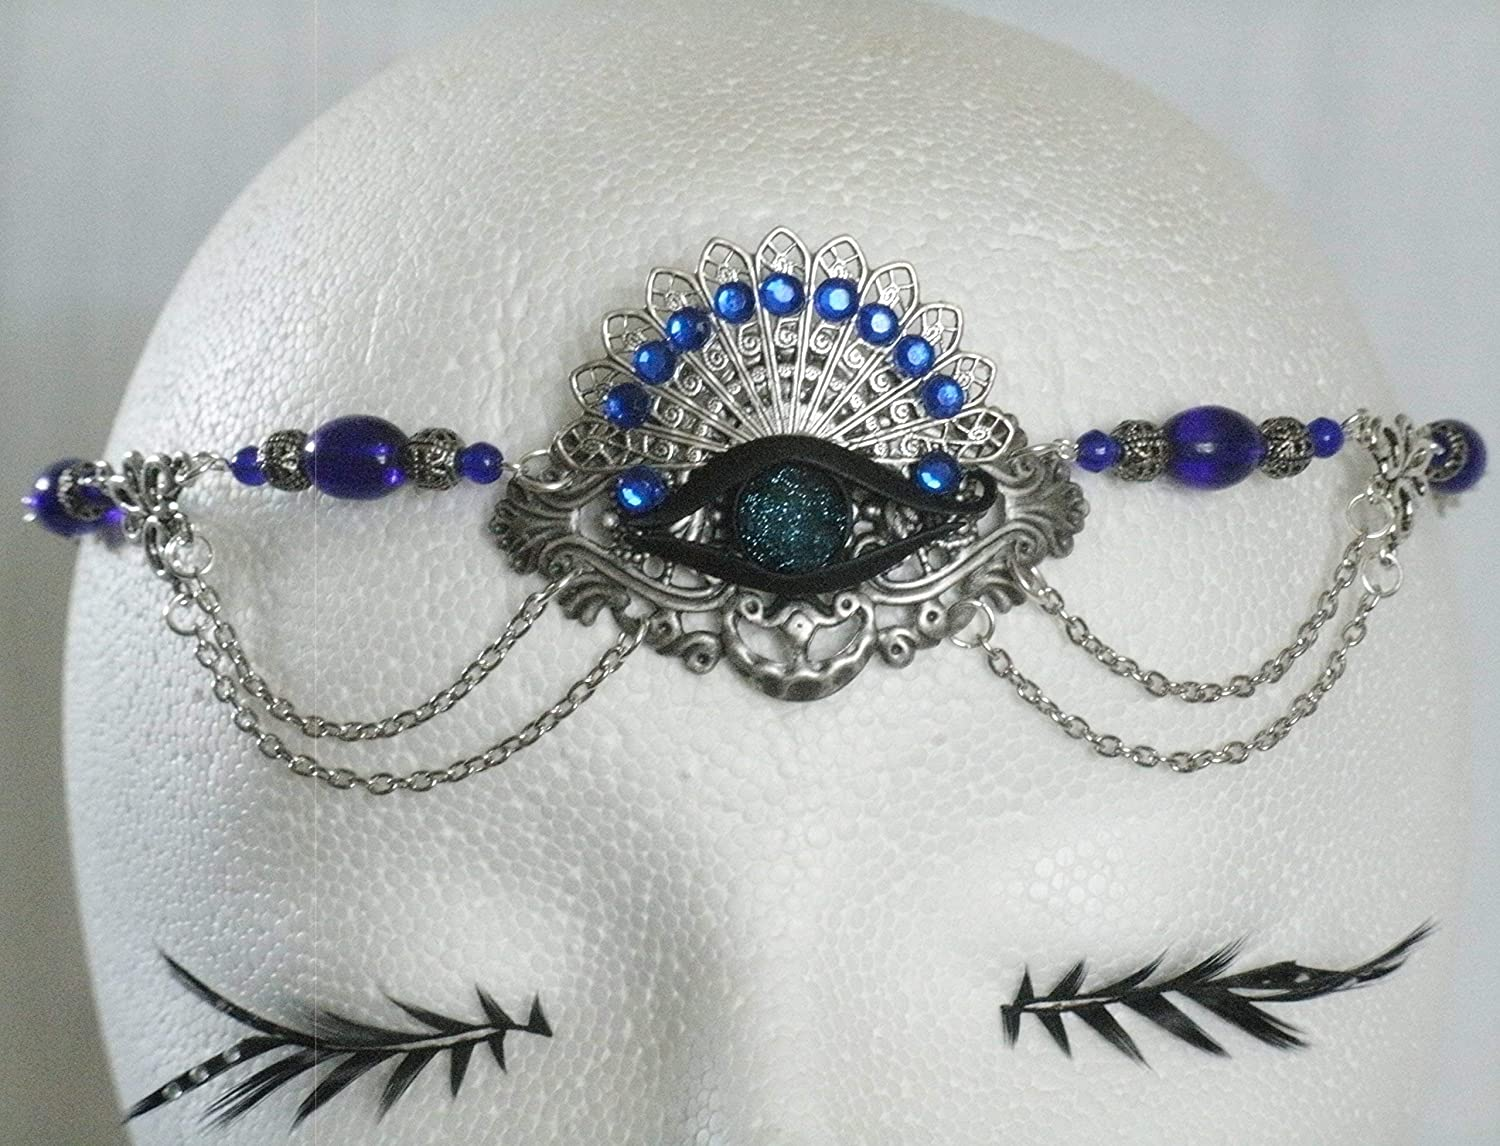 Chakra Eye Circlet handmade jewelry wiccan pagan wicca witch witchcraft metaphysical goddess headpiece